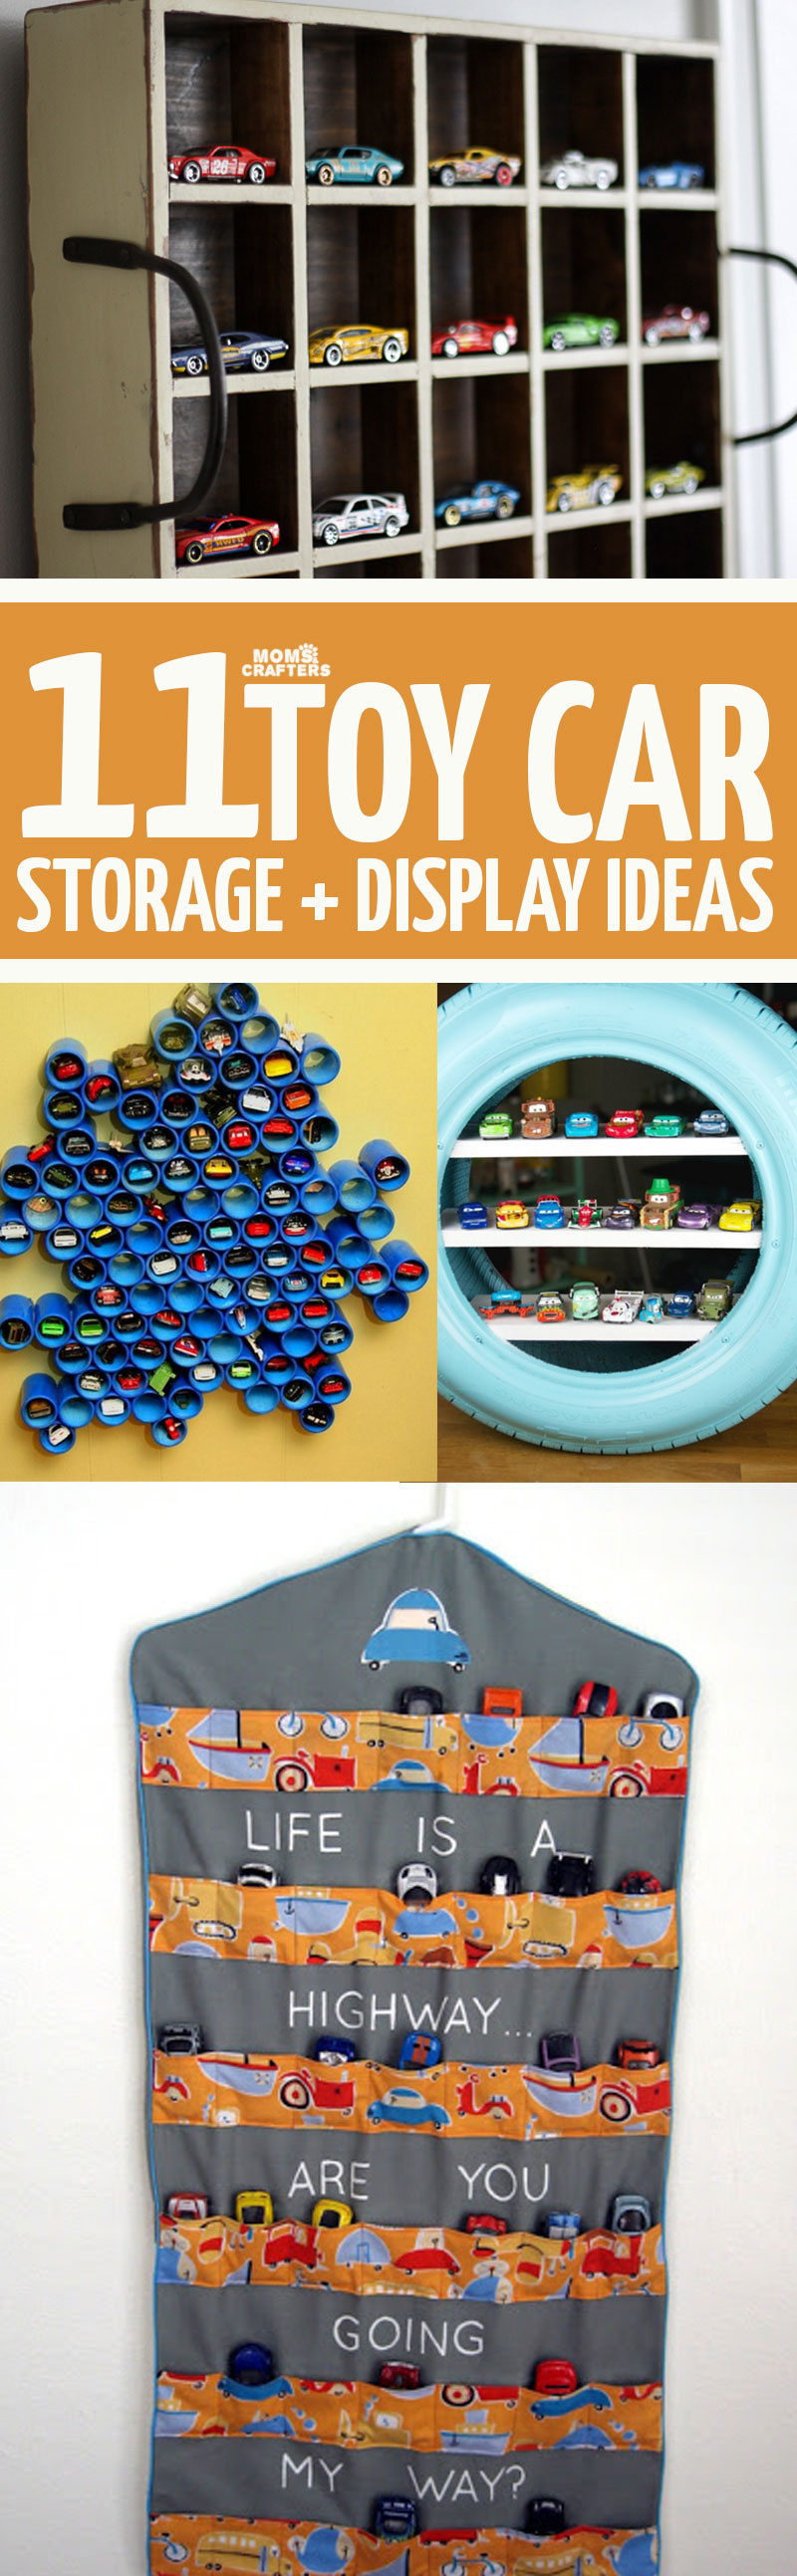 Click for 11 brilliant and beautiful Hot Wheels display and storage ideas - the perfect way to organize your toy cars! Display your Matchbox cars beautifully with these cool toy organization hacks. #organization #toys #hotwheels